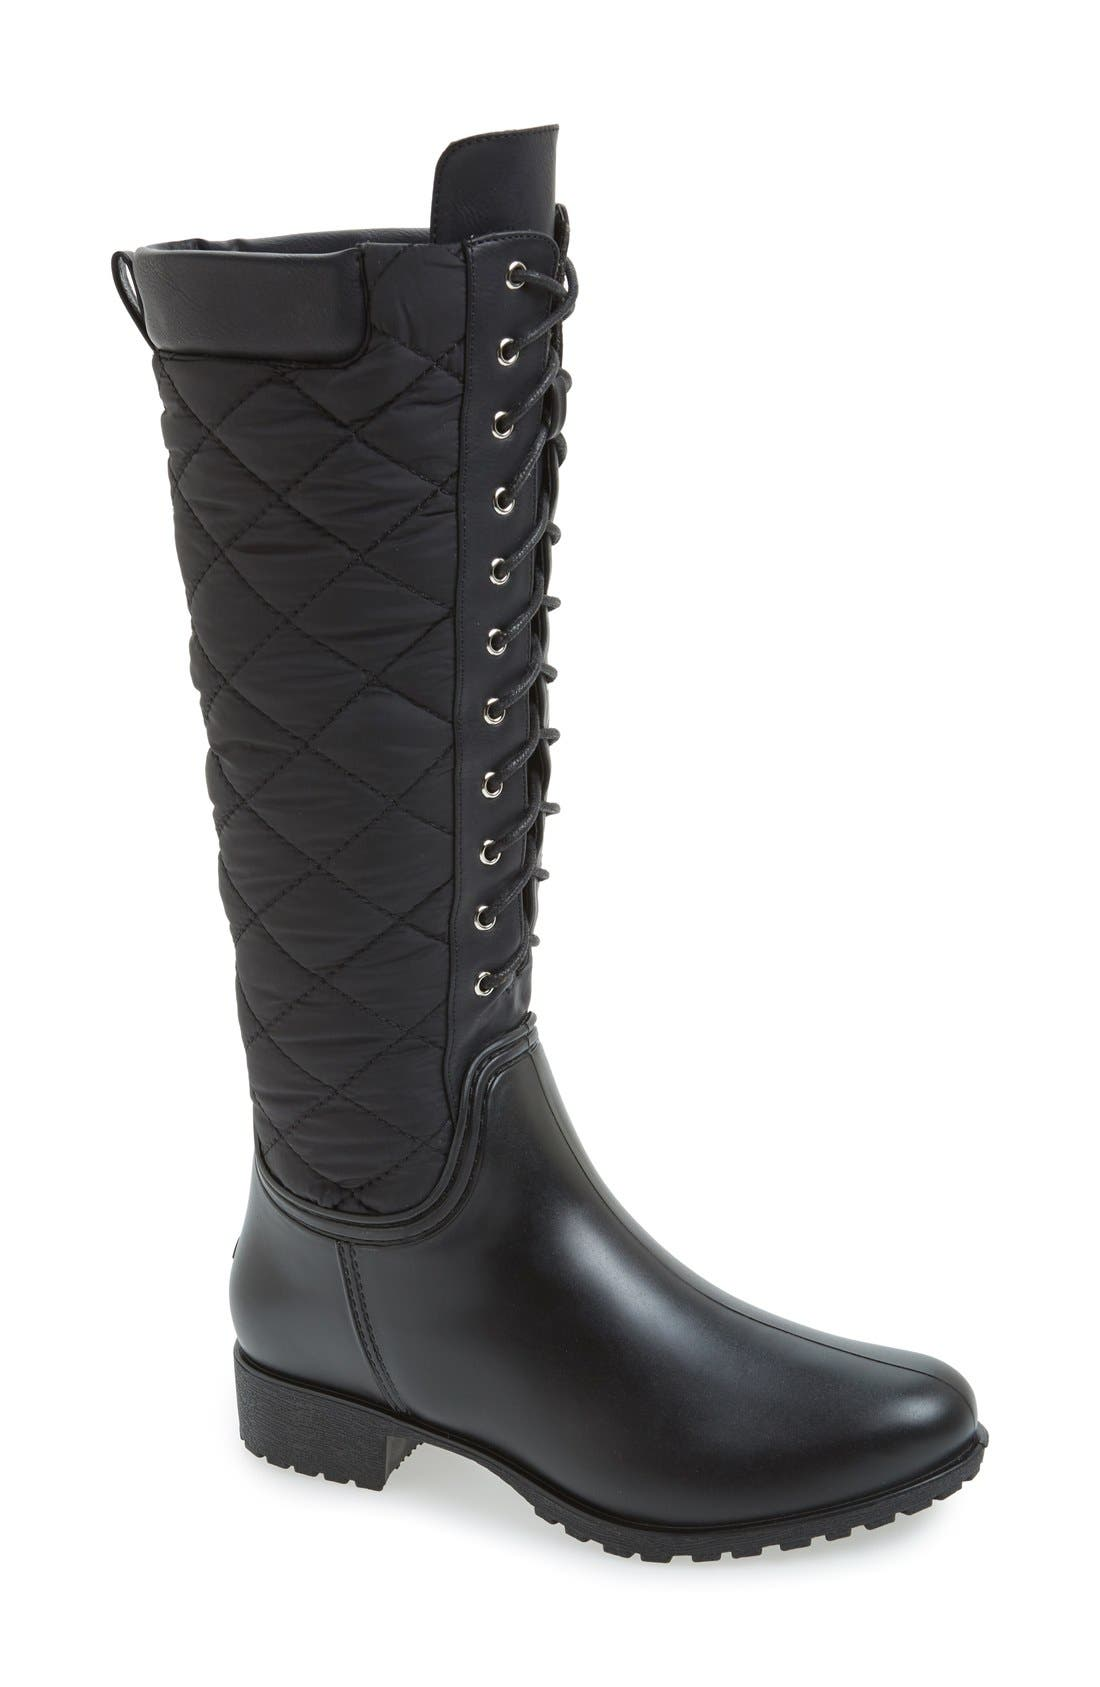 'Tofino' Quilted Tall Waterproof Rain Boot,                         Main,                         color, Black